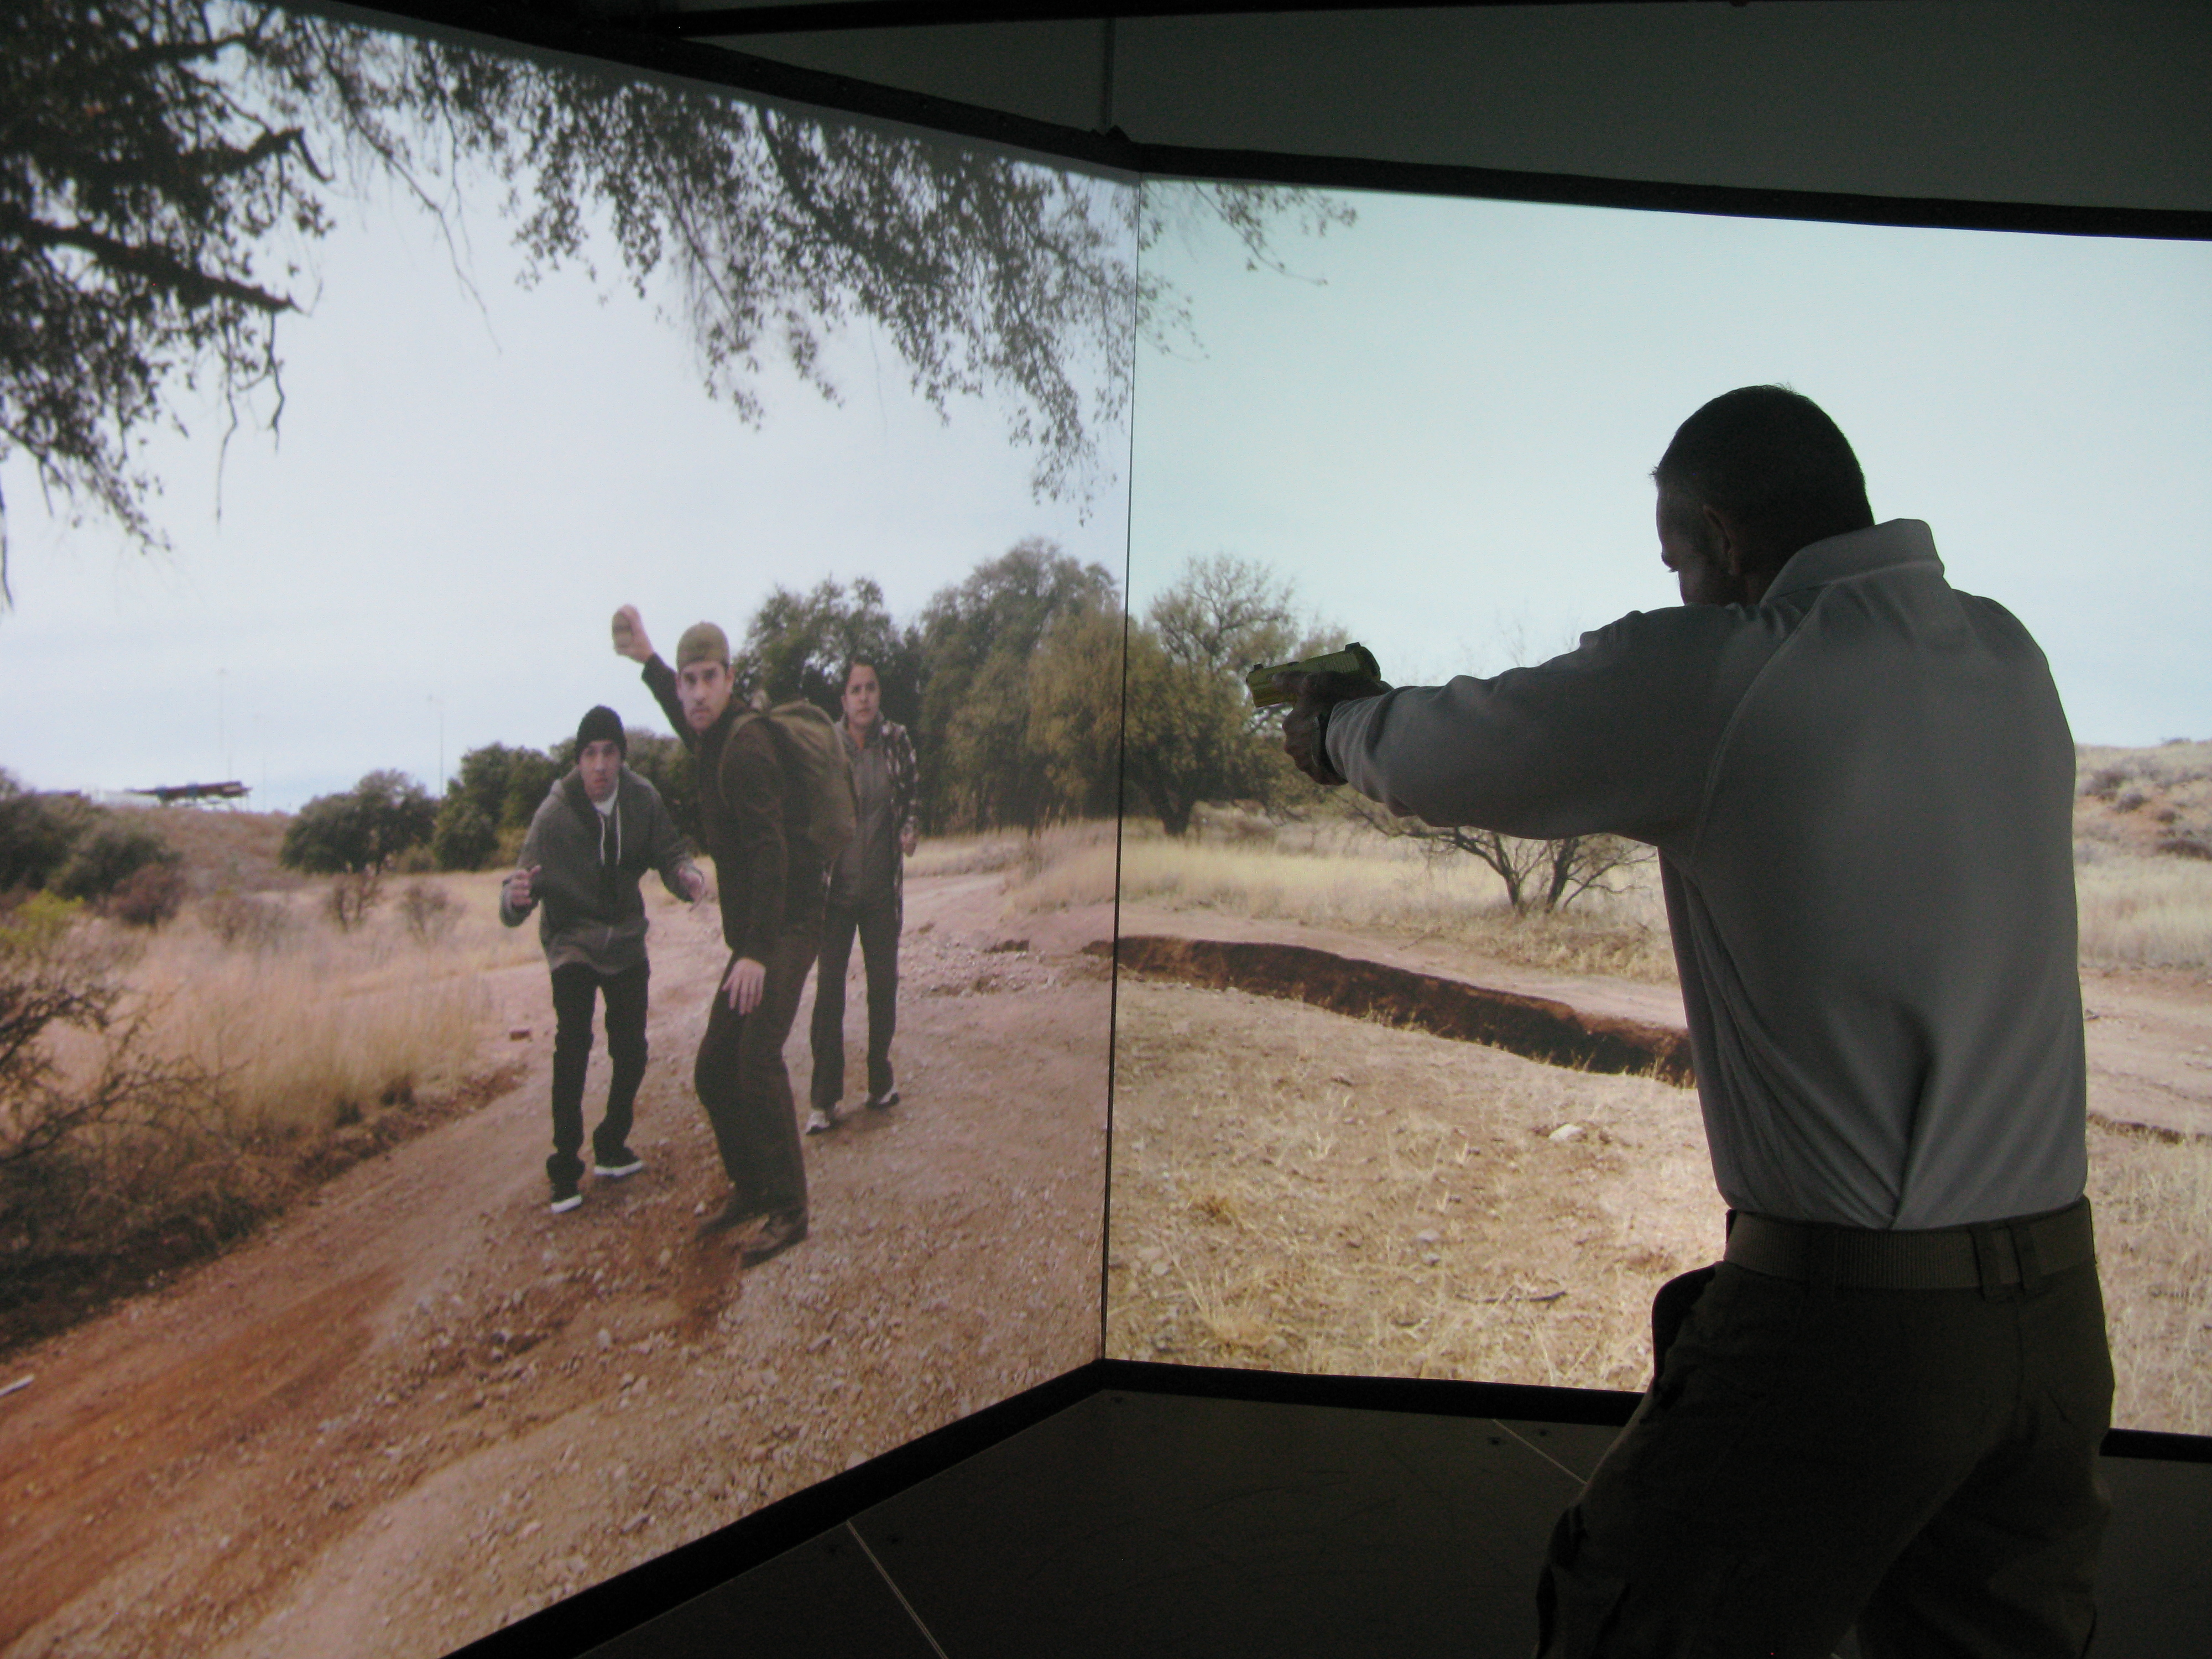 In order to reduce shootings, all Border Patrol agents are now required to train in a simulated environment complete with immigrants threatening rocks. Agent Aaron Sims trains on the simulator at the CBP National Training Center in Harper's Ferry, W.V. John Burnett/NPR